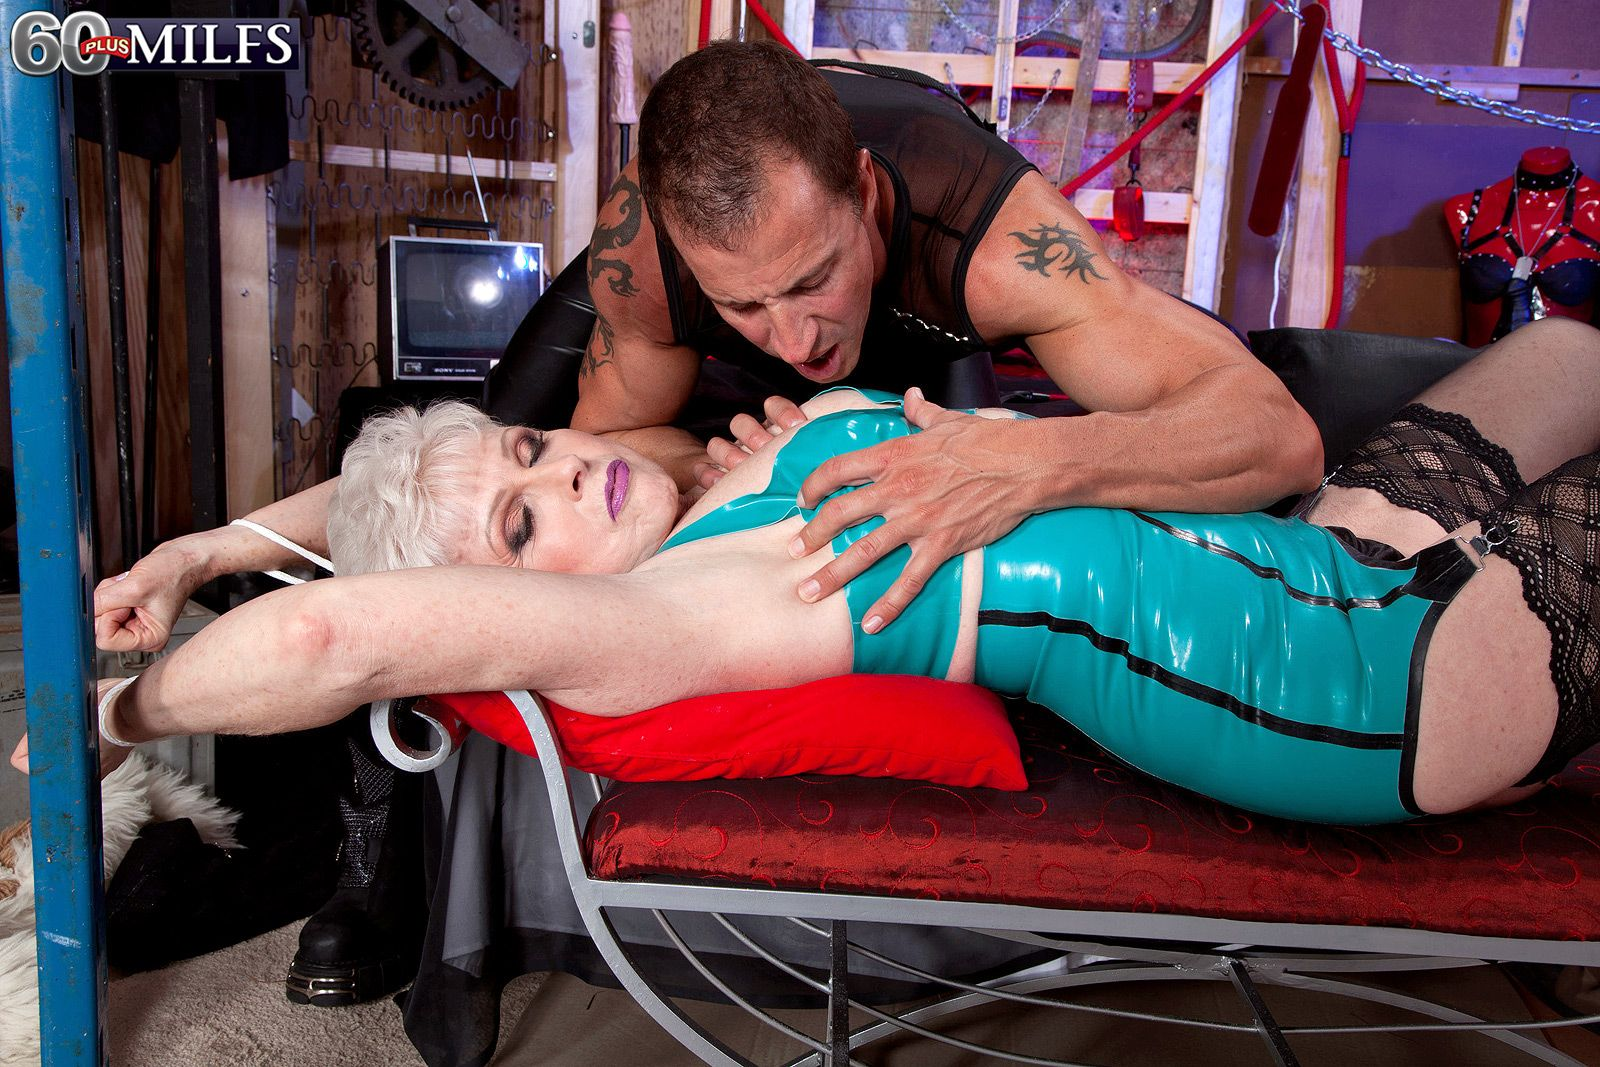 Hot over 60 women indulges in BDSM games wearing latex attire and stockings